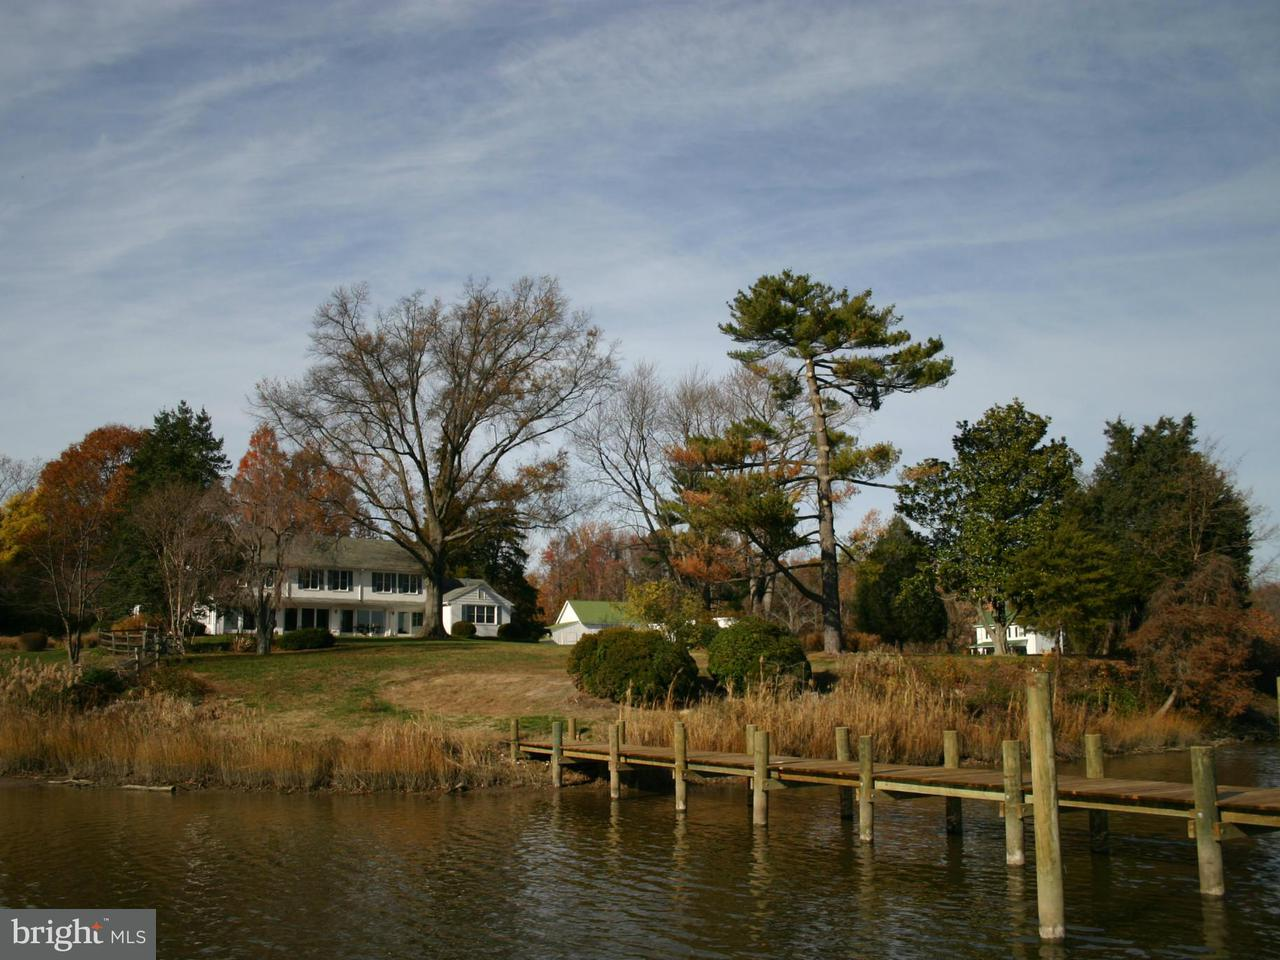 Farm for Sale at 5793 Quaker Neck Landing Rd Chestertown, Maryland 21620 United States